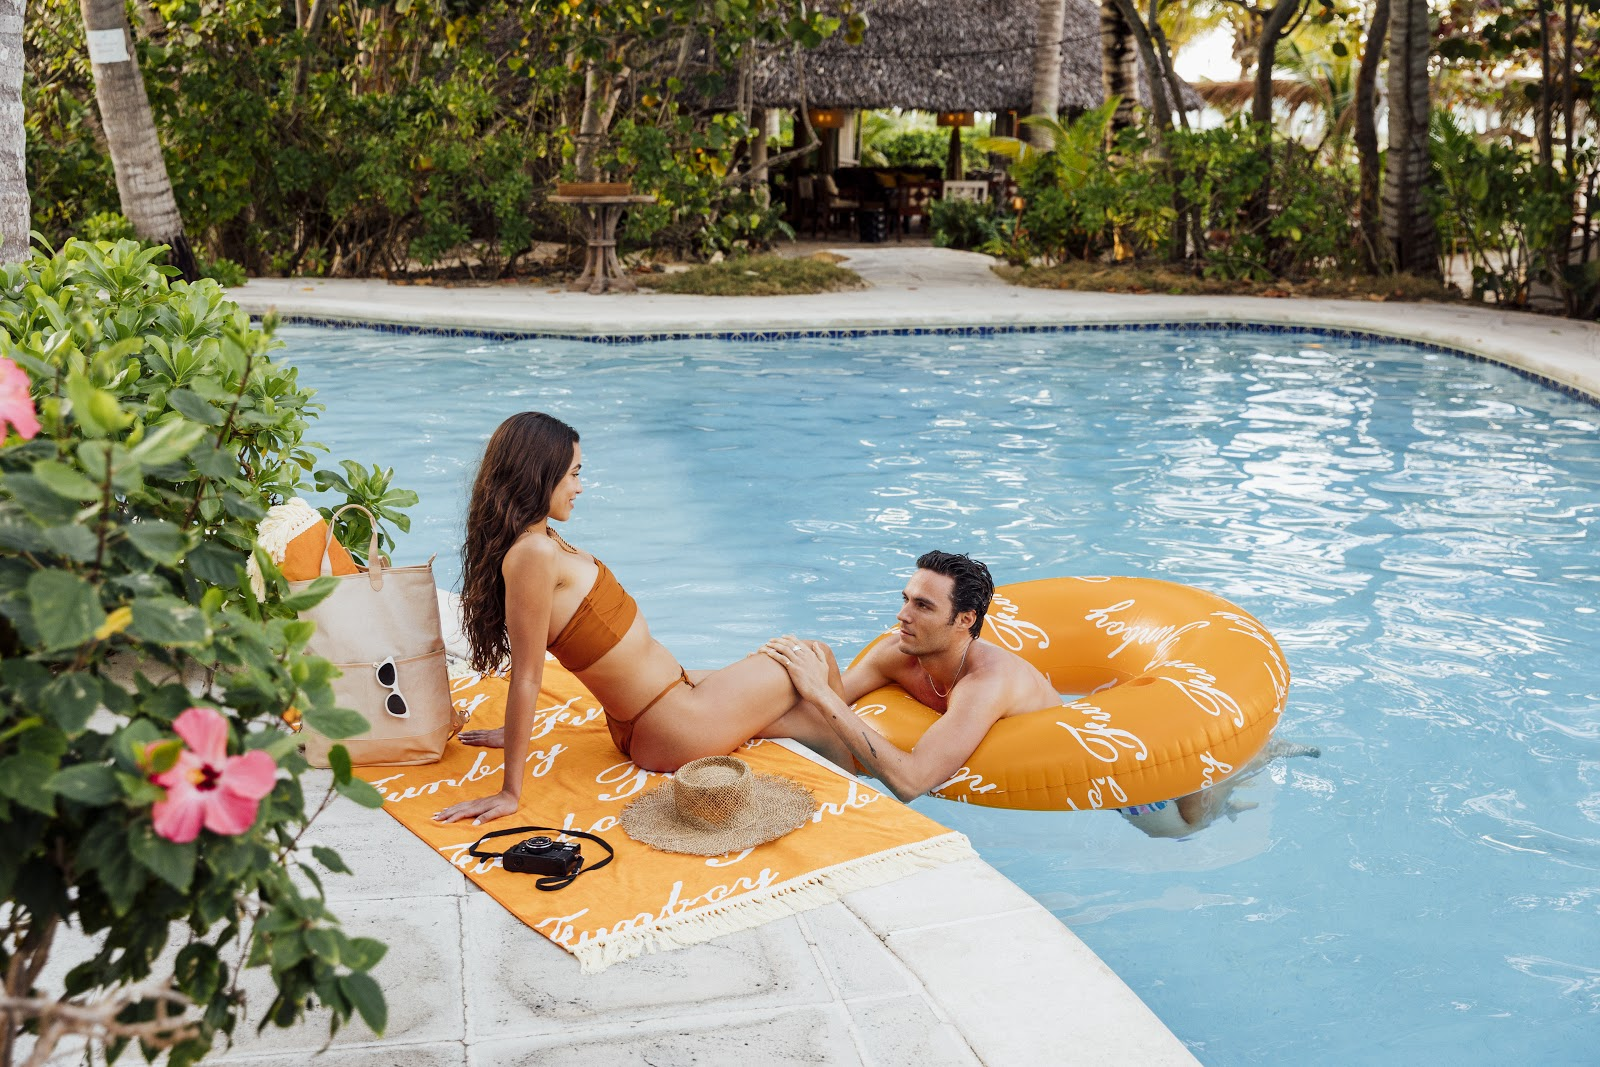 How To Blow Up Pool Floats: 6 Ways To Make It Easier